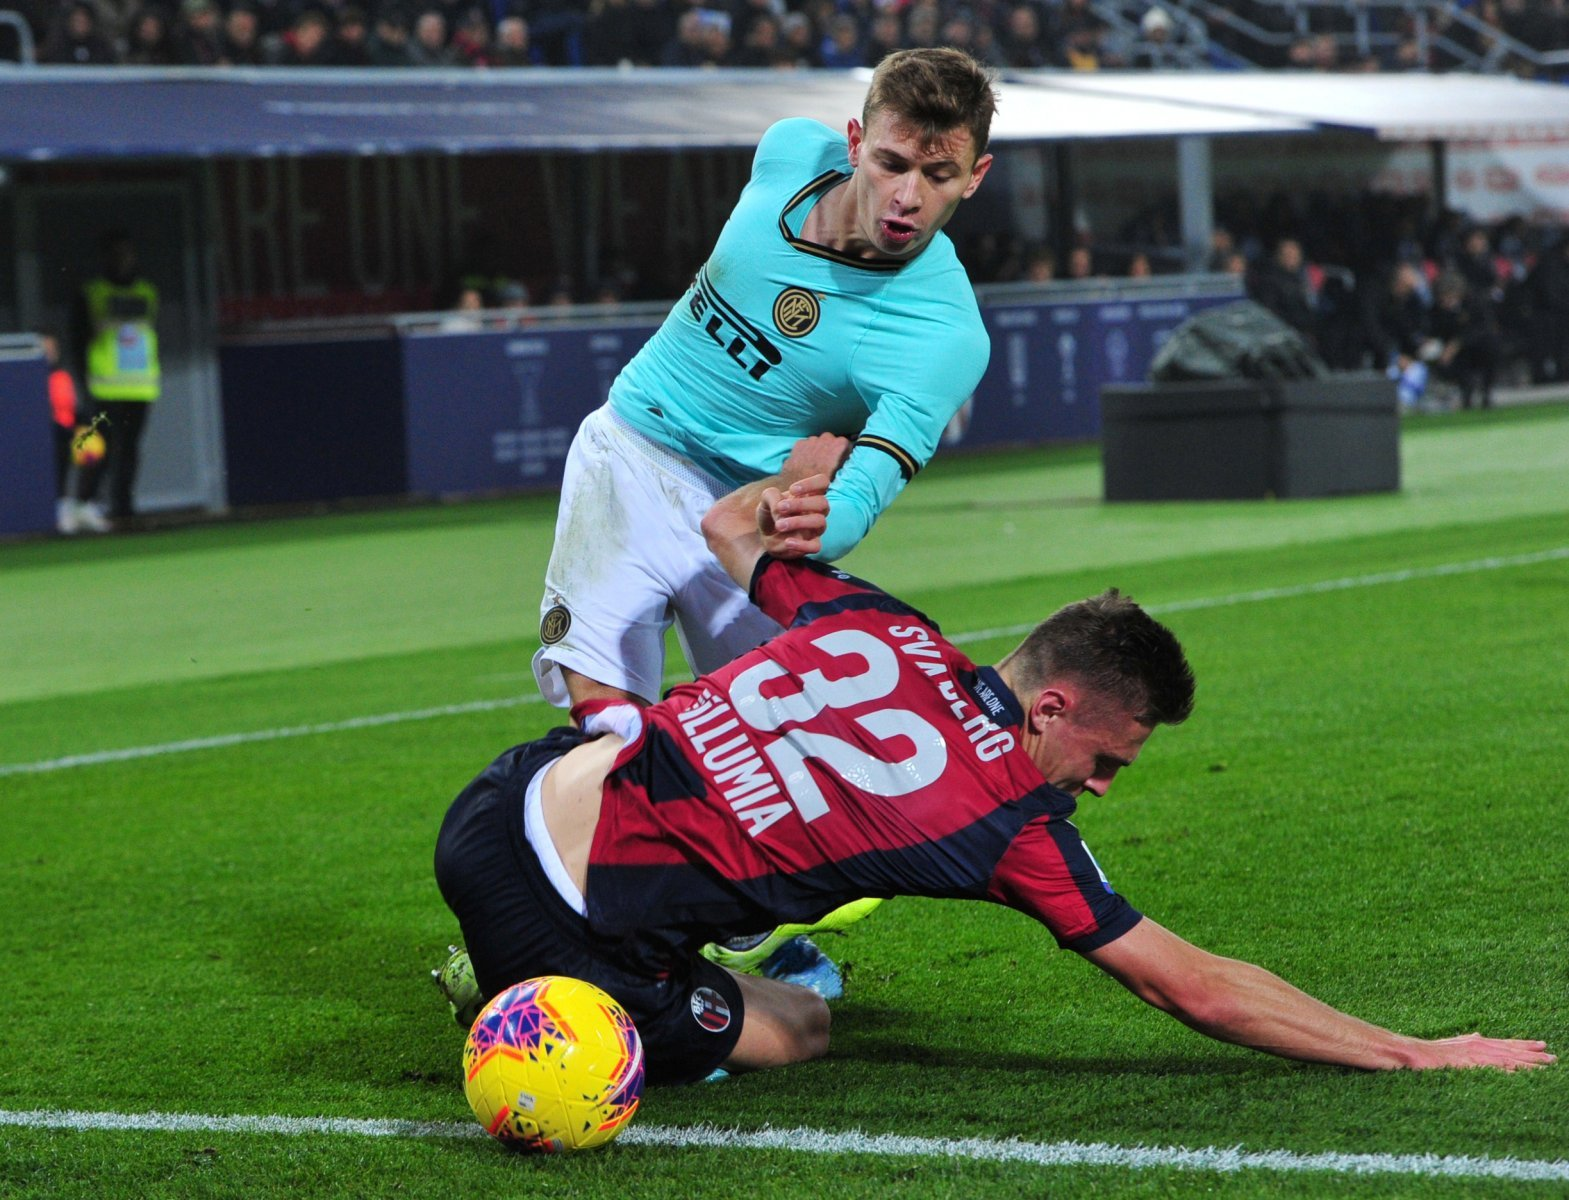 Unsung Hero: Inter Milan's Nicolo Barella gave a well-rounded performance against Bologna